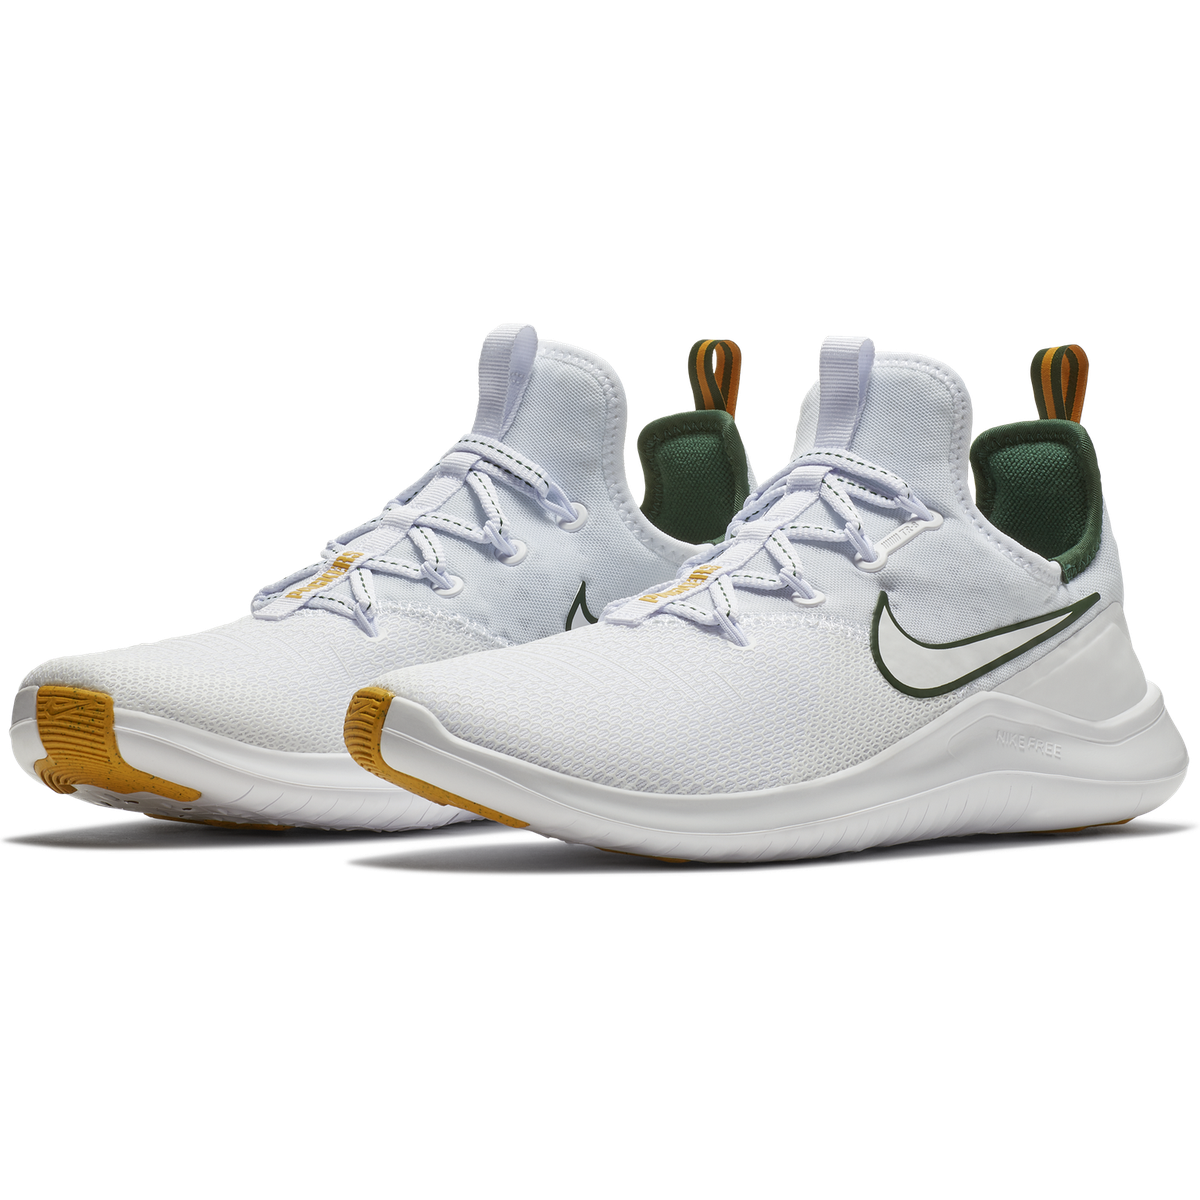 Nike releases new NFL-themed Air Max Typha 2 shoe collection ... 508fa192519